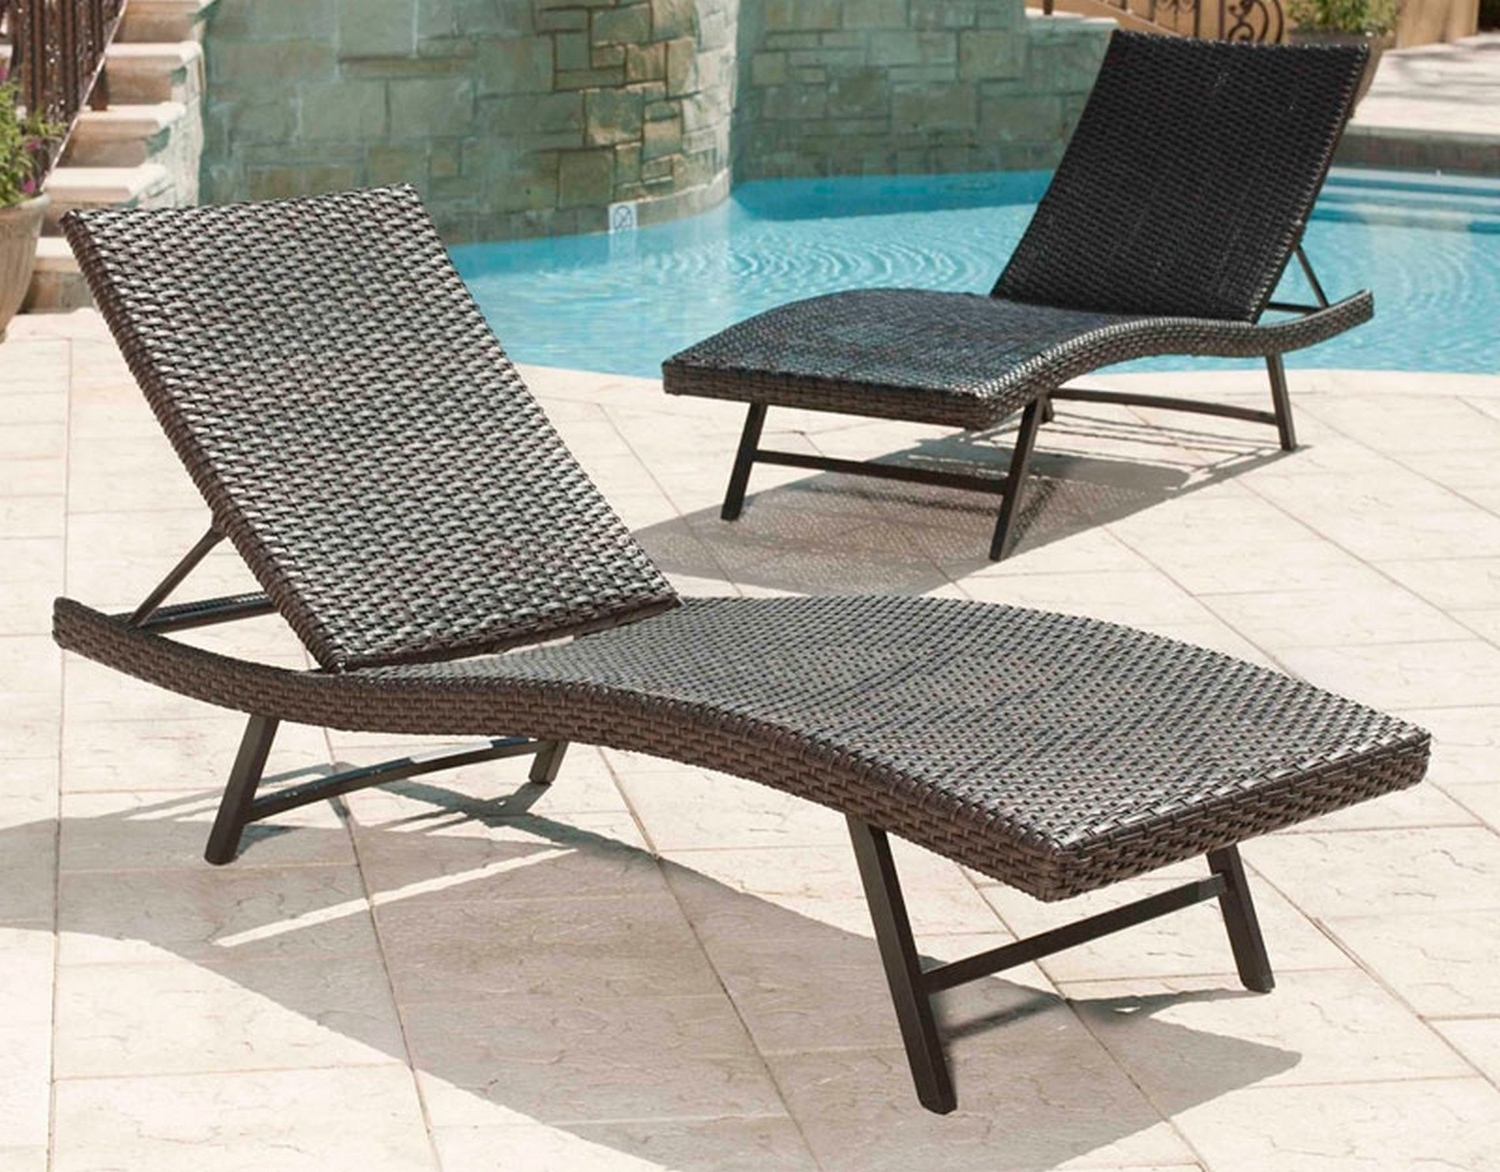 Commercial Pool Lounge Chairs Chaise Pvc Gallery Of Aluminum Folding Beach Lounge